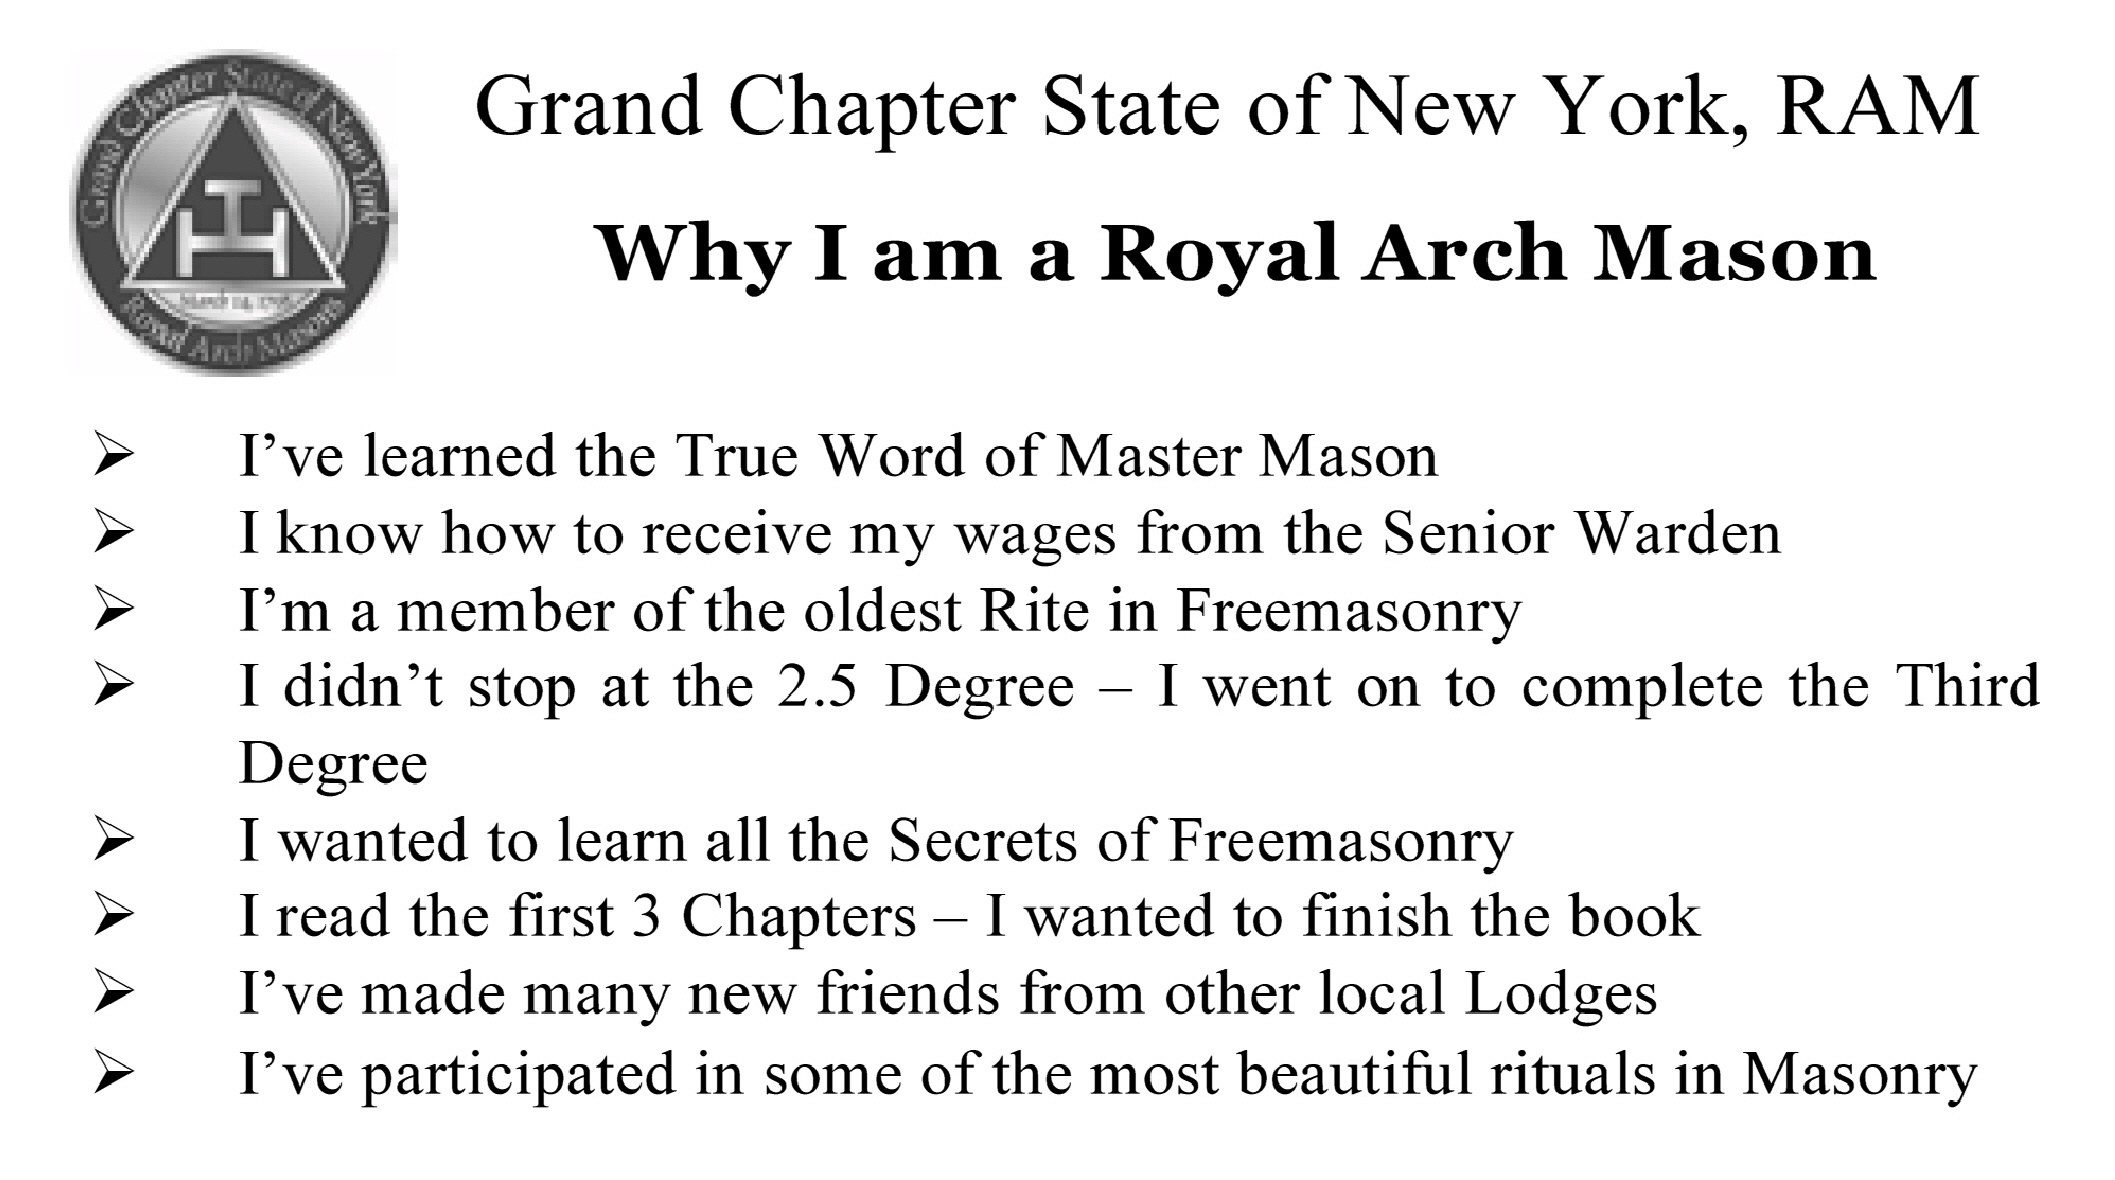 Royal Arch Education - Royal Arch Masons